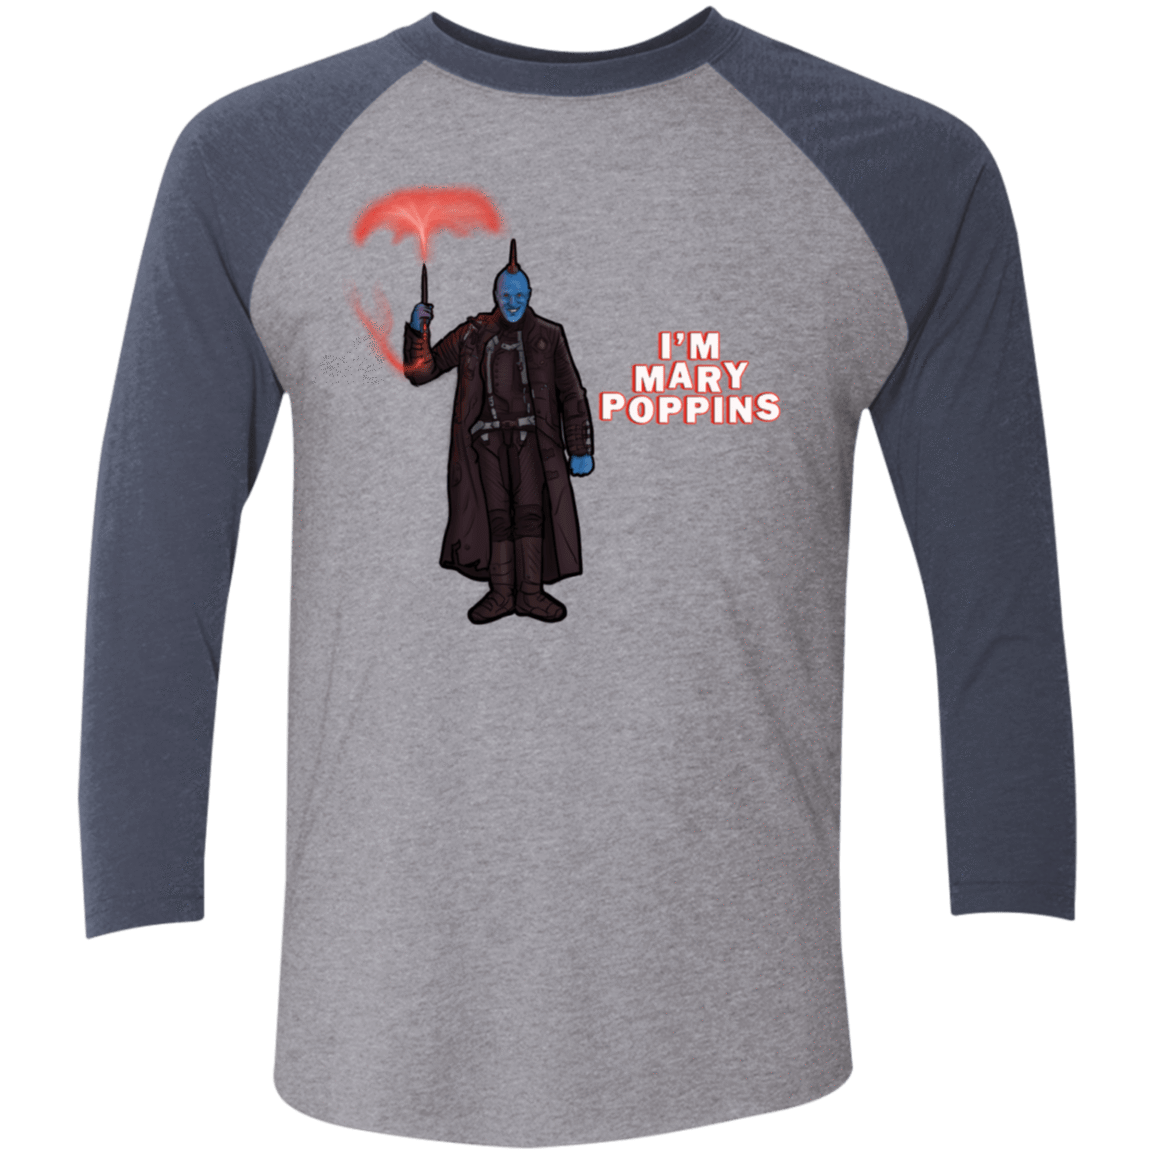 T-Shirts Premium Heather/Vintage Navy / X-Small Yondu Poppins Men's Triblend 3/4 Sleeve